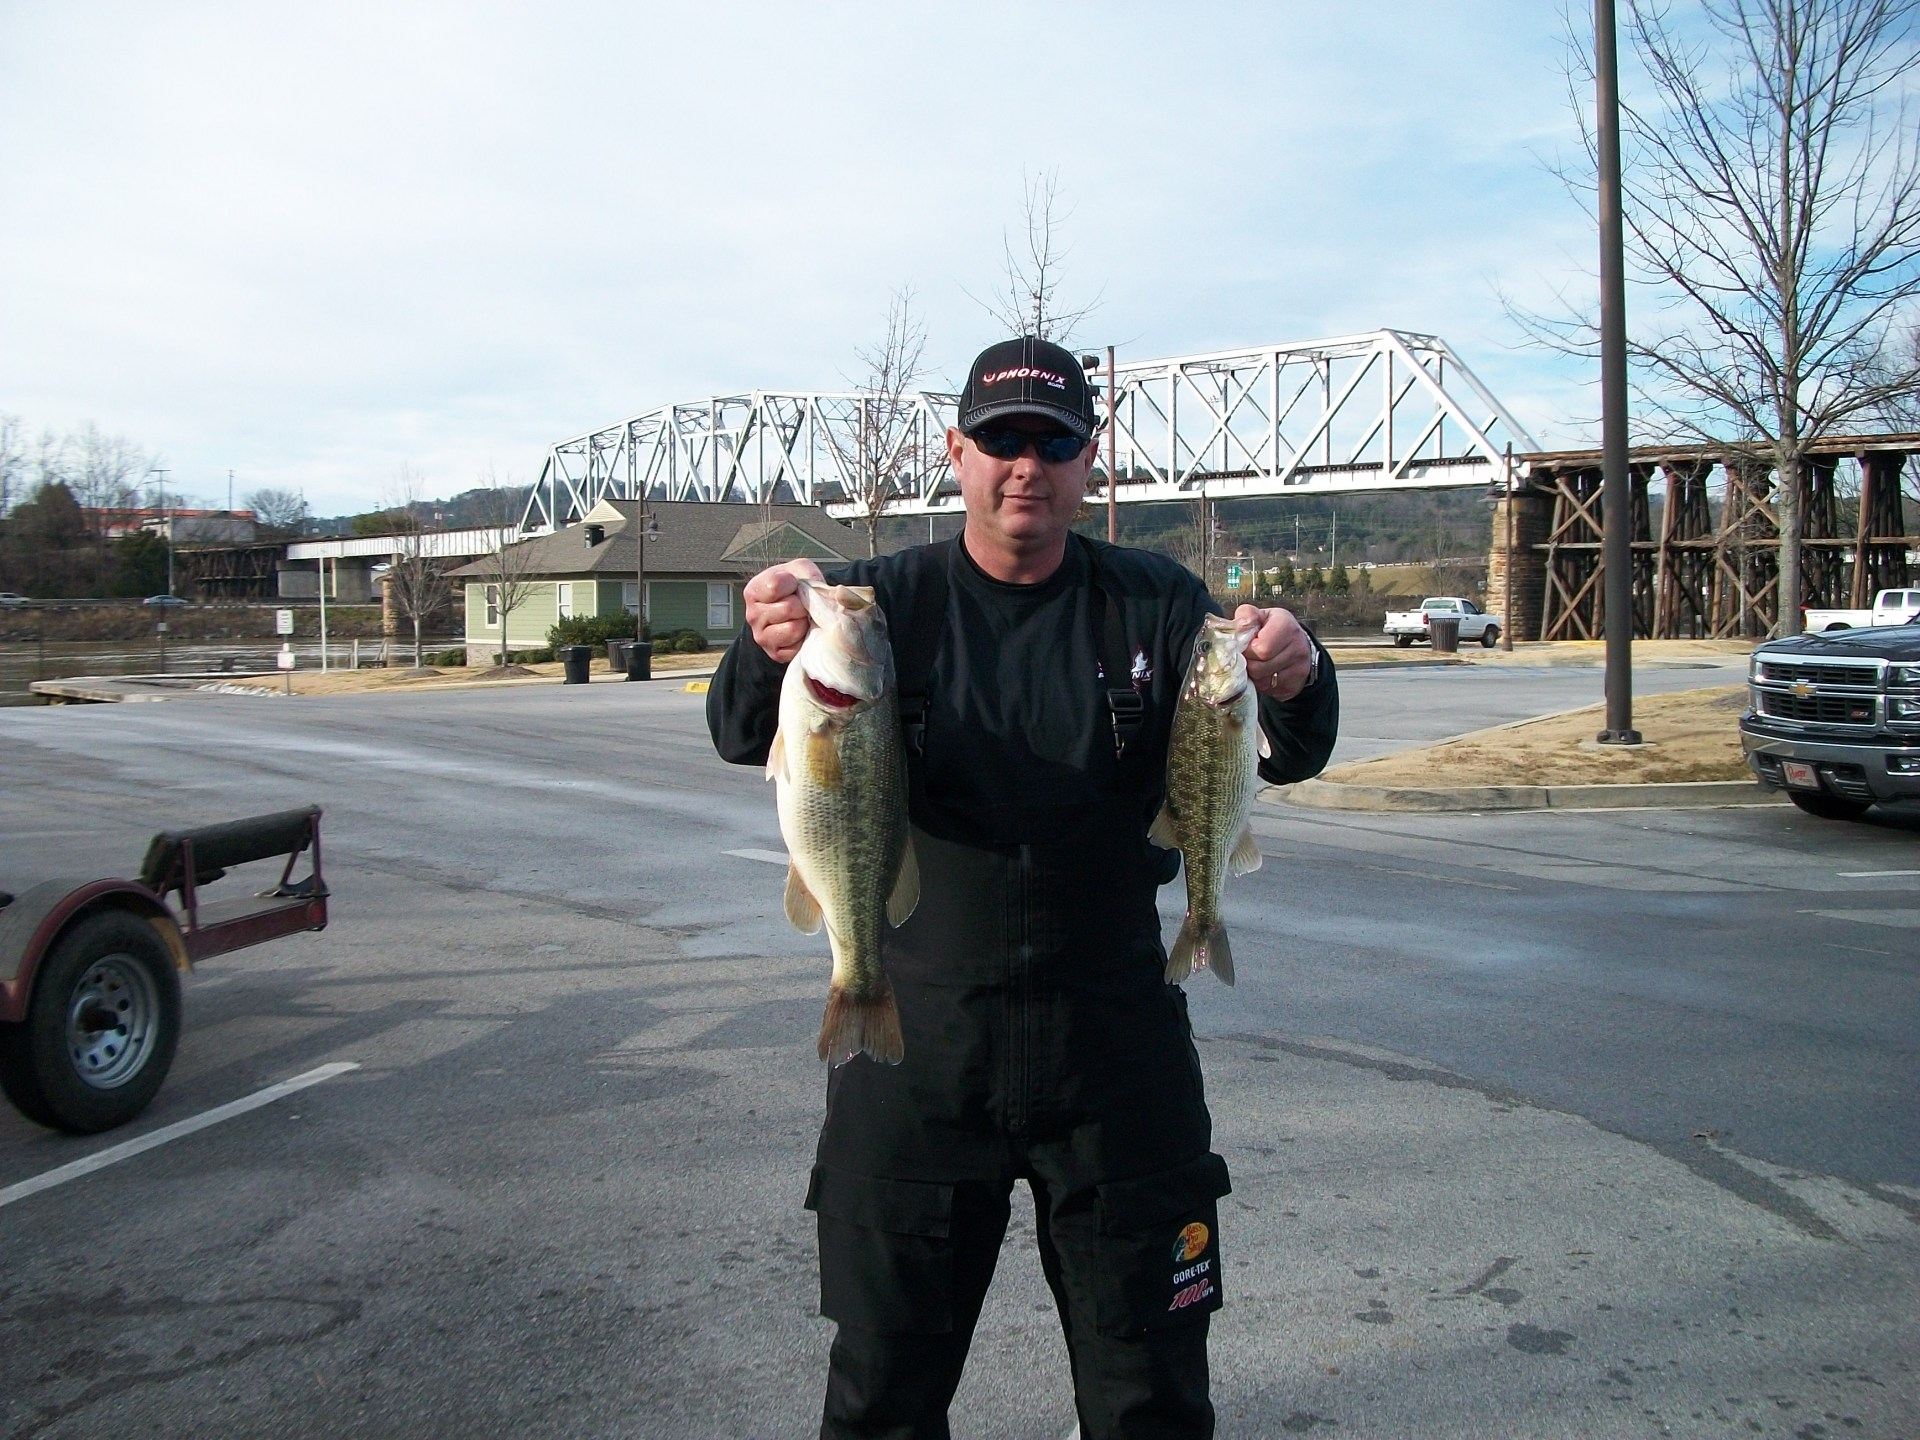 Neely Henry 2nd place: Boomer Arnold and guest (11.85 lbs.)